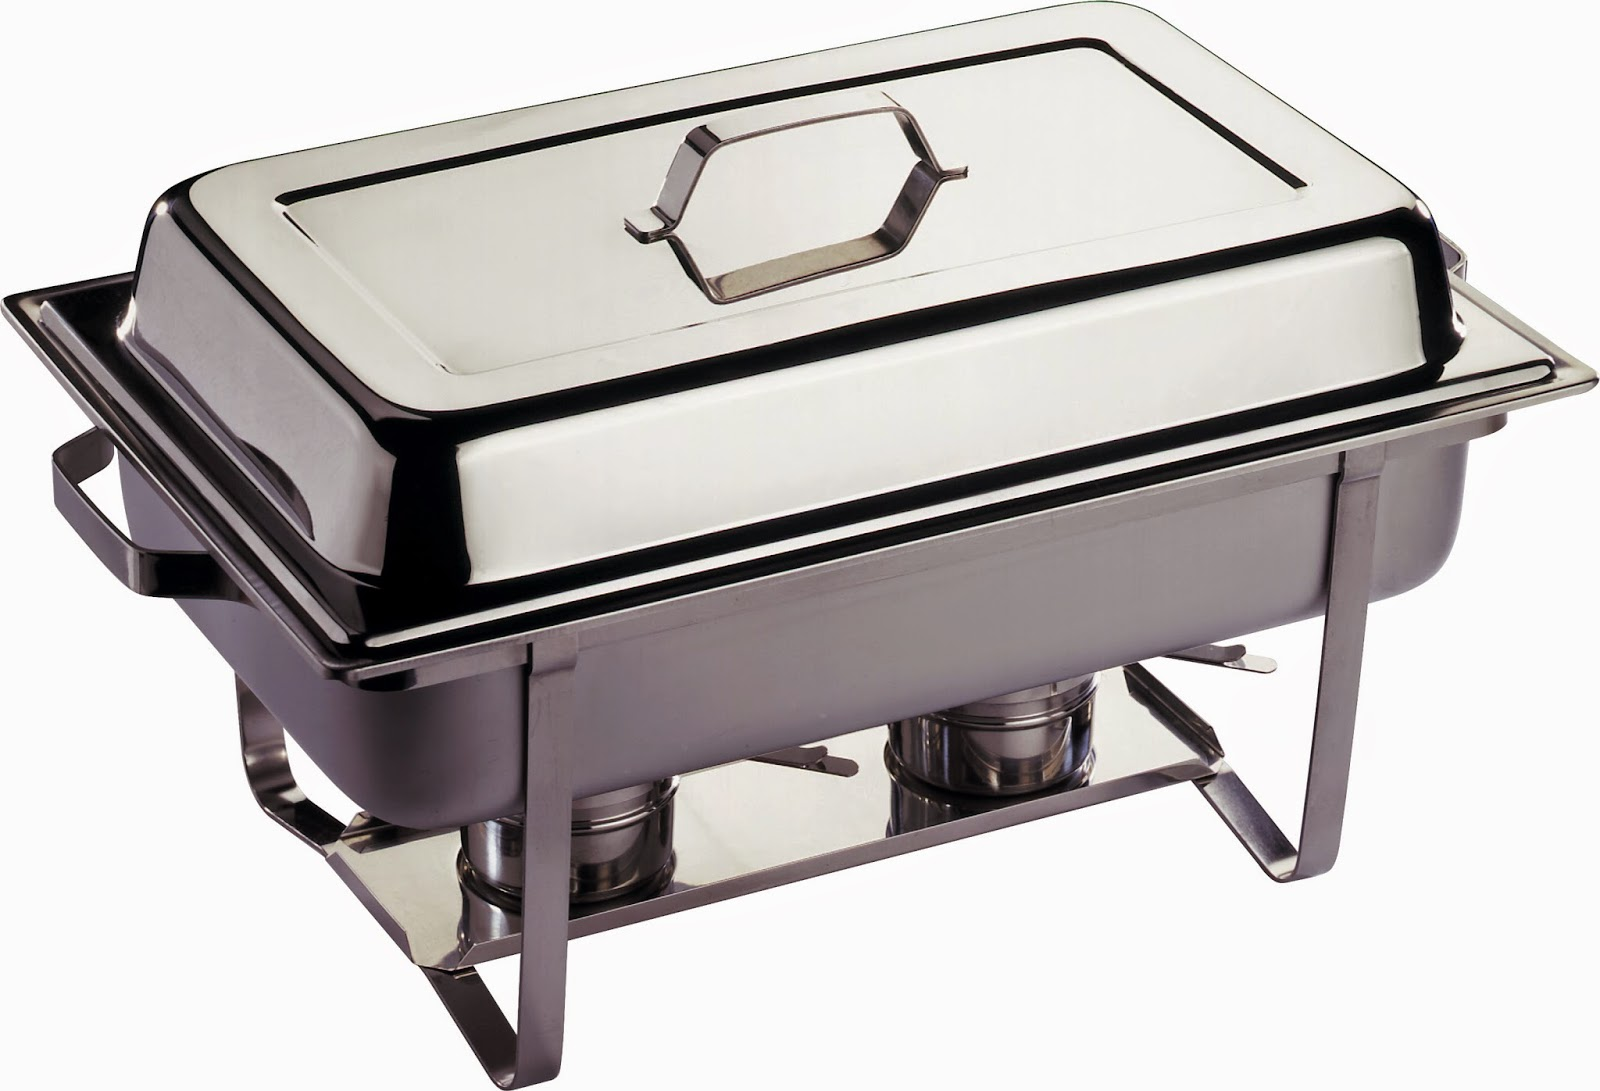 Chafing Dish Gastronom 1/1 - Model Economic